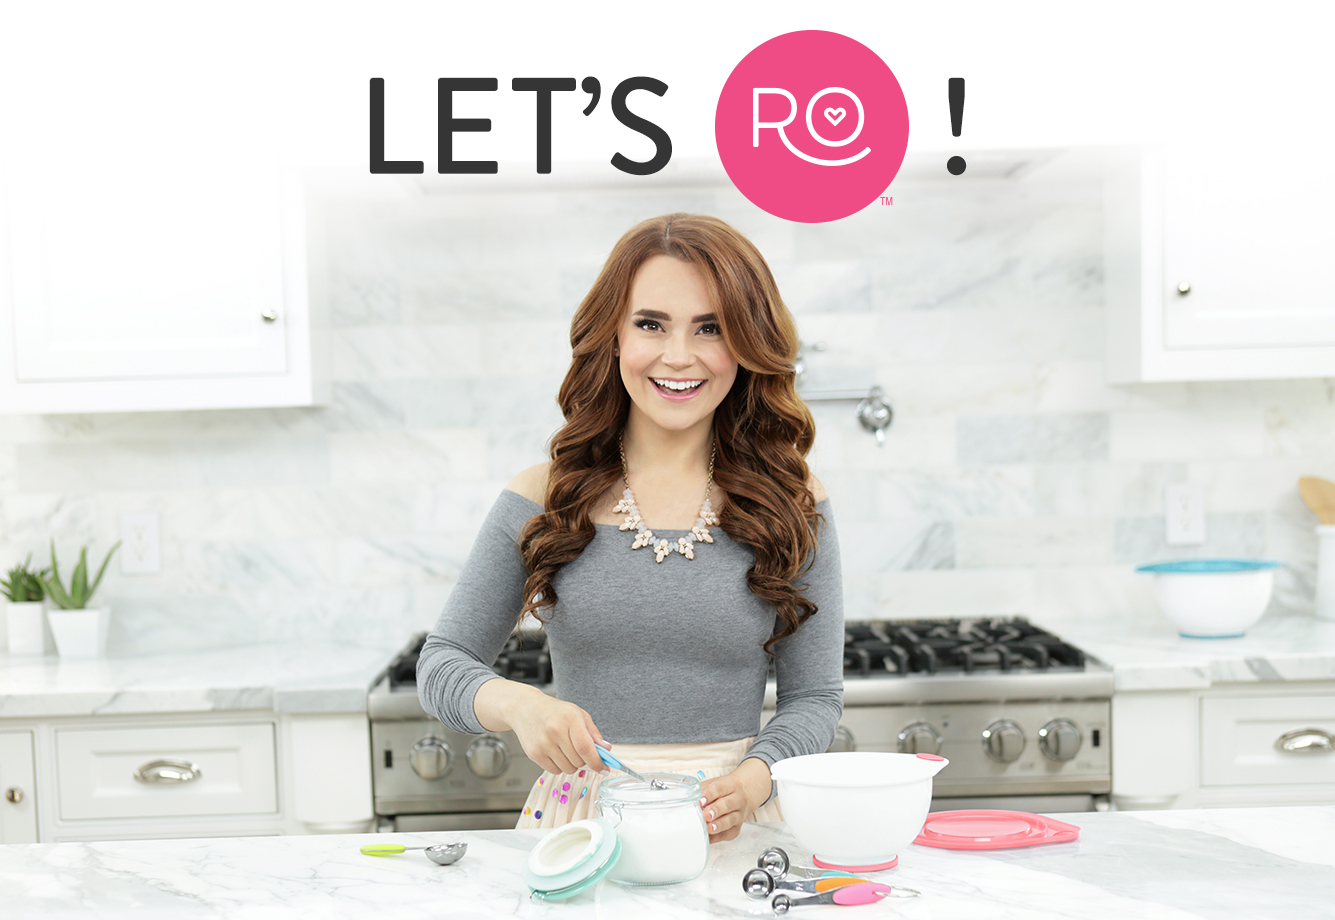 Shop Rosanna Pansino's New Baking Line with Wilton